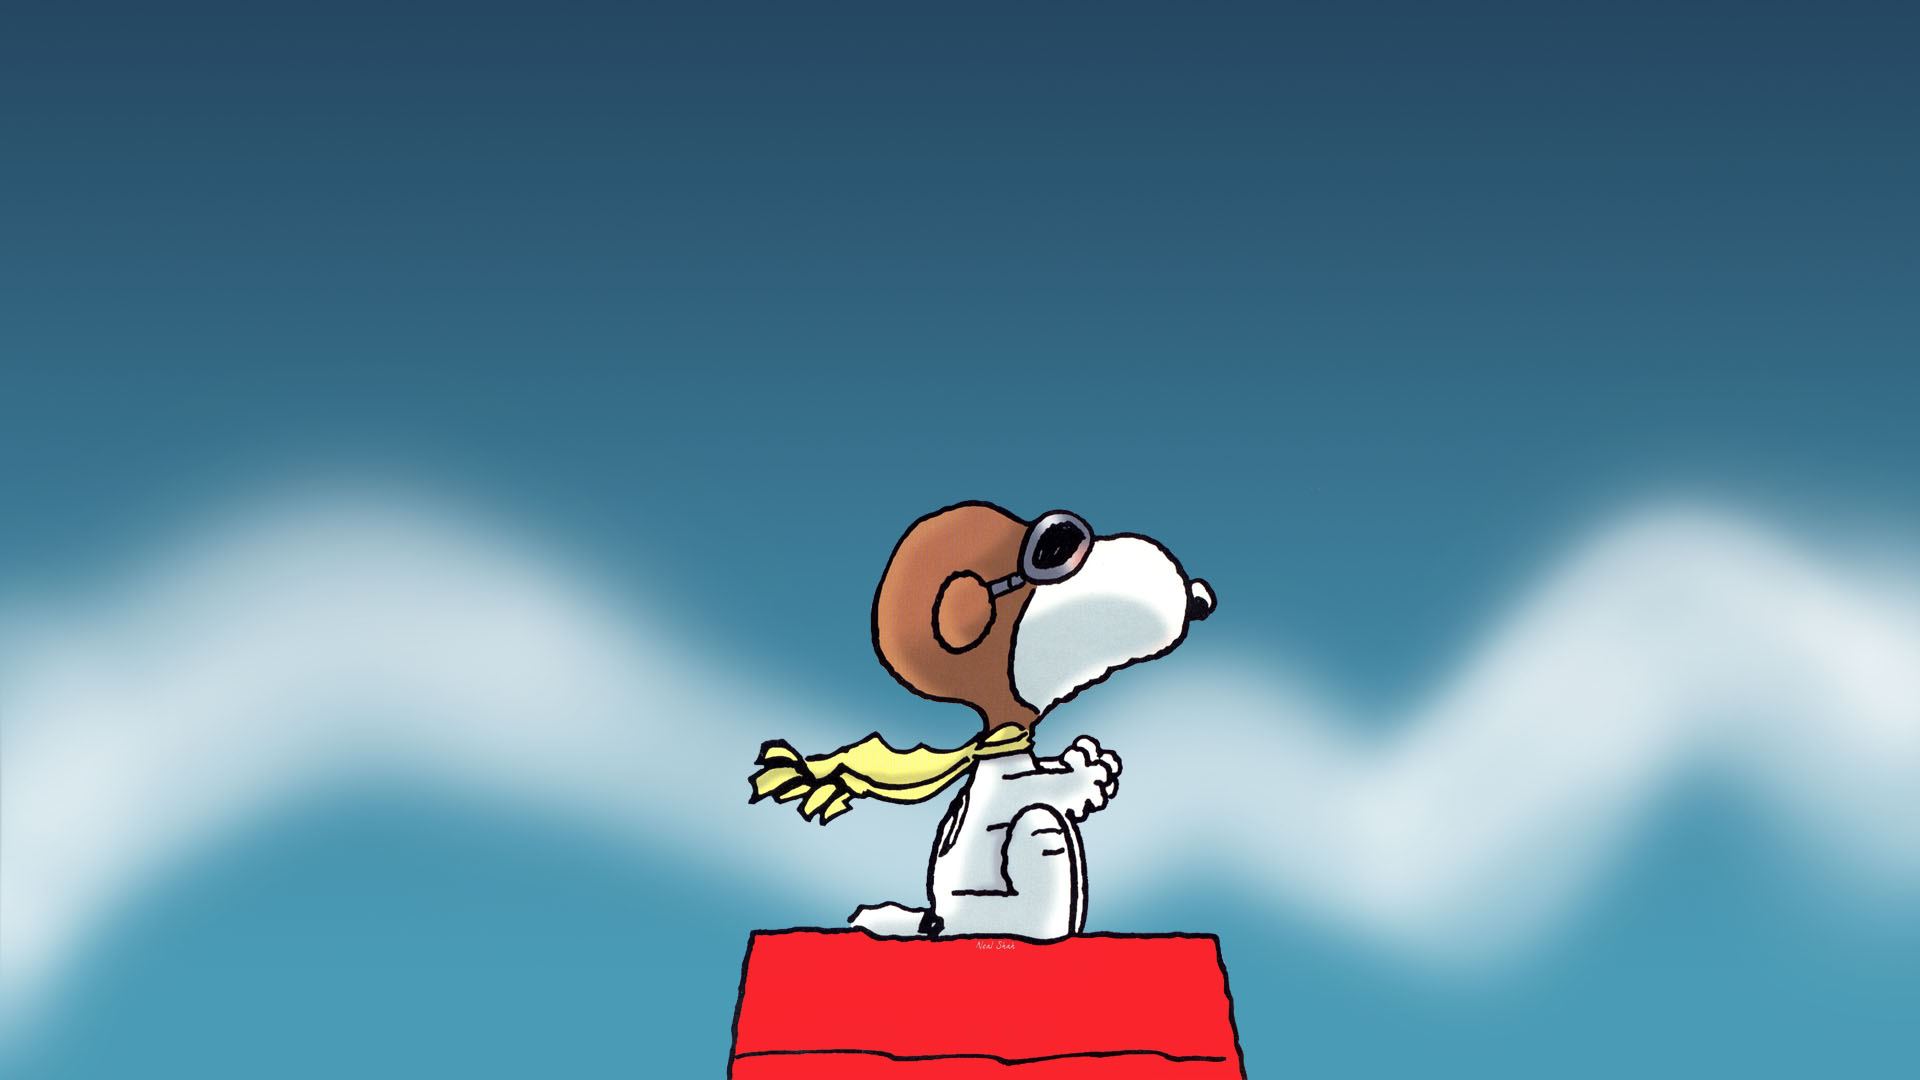 <b>Snoopy Wallpaper HD</b> | PixelsTalk.Net